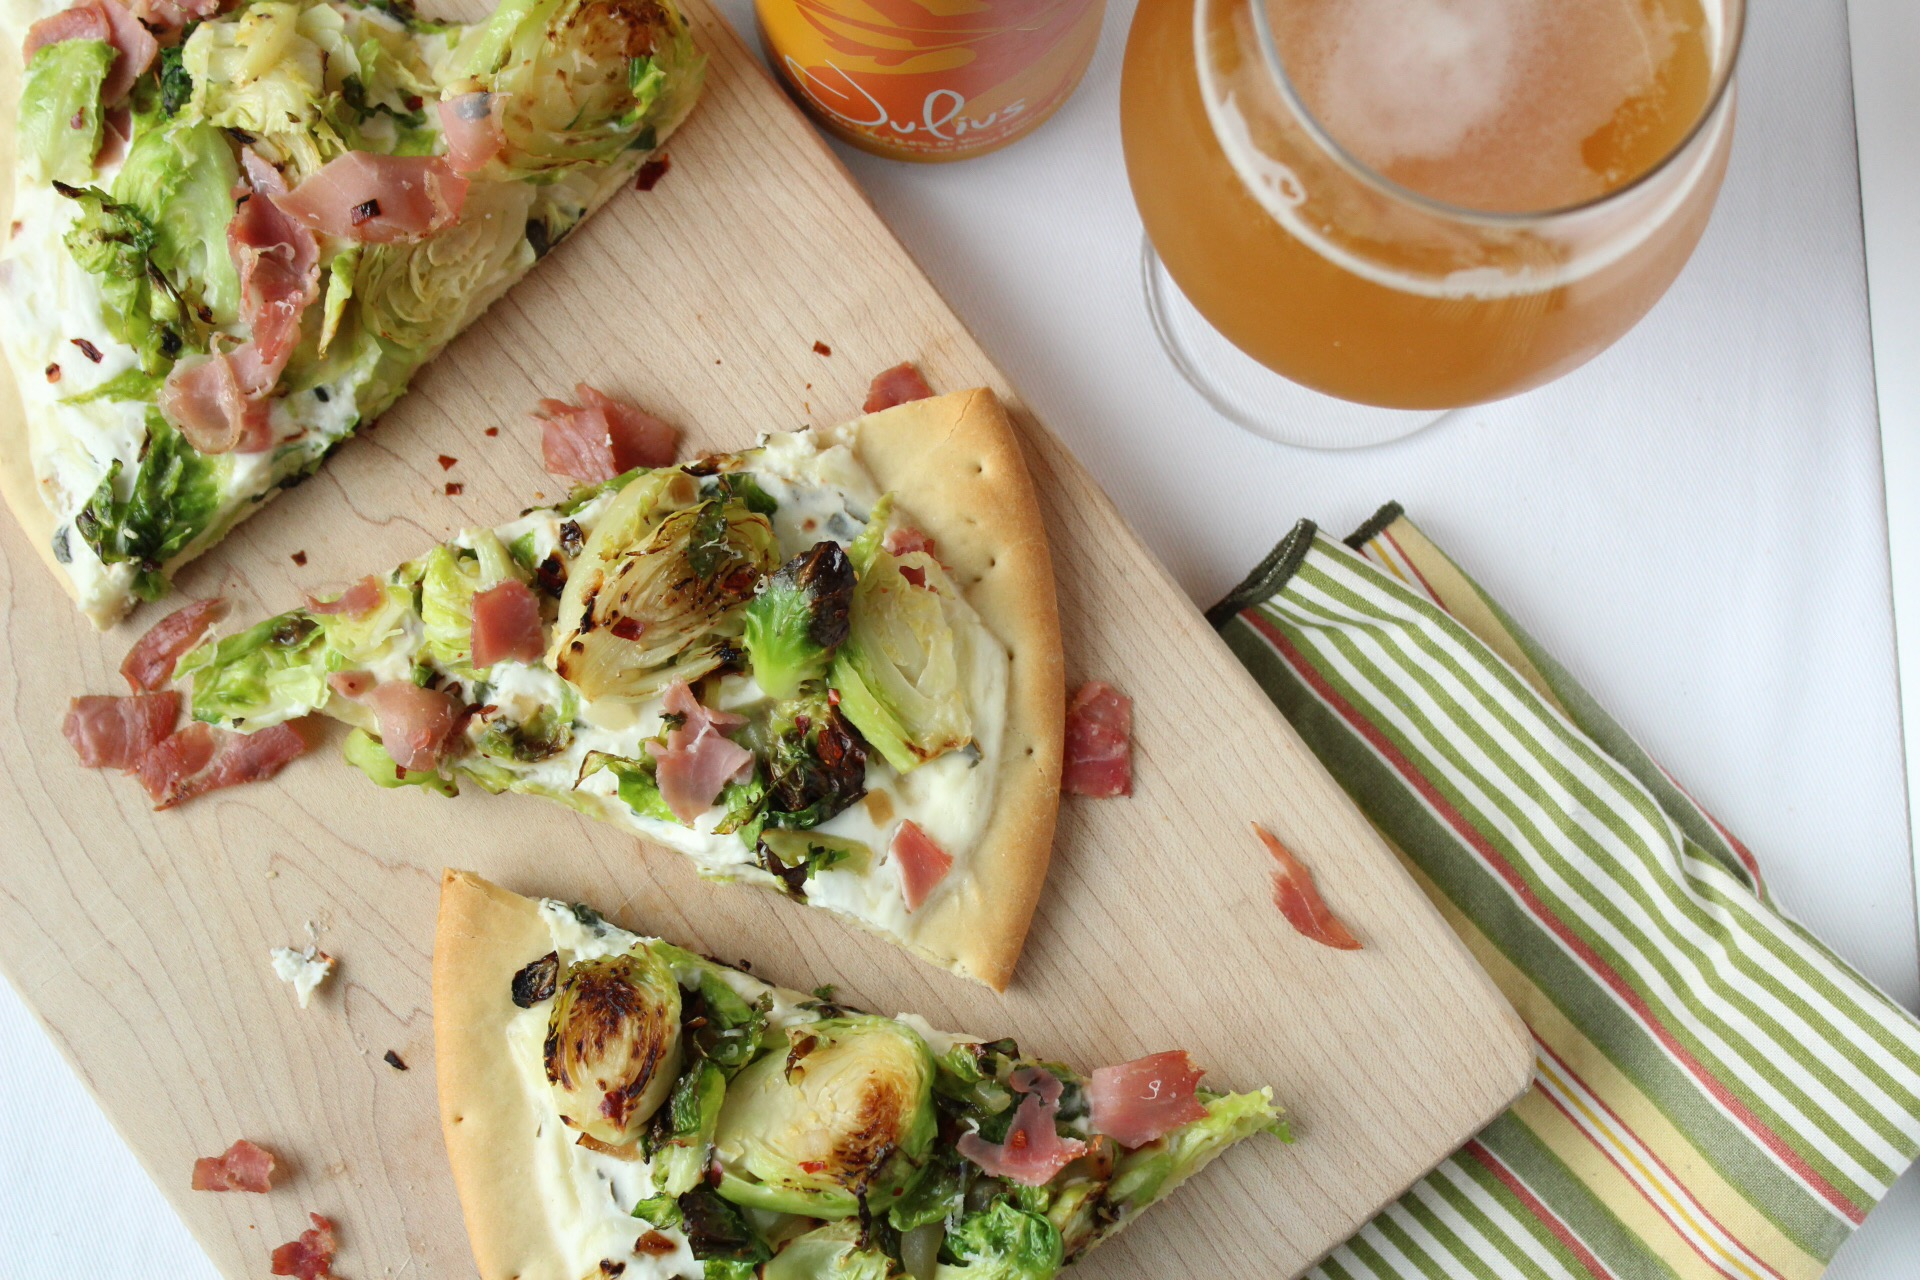 Prosciutto and brussel sprout flatbread